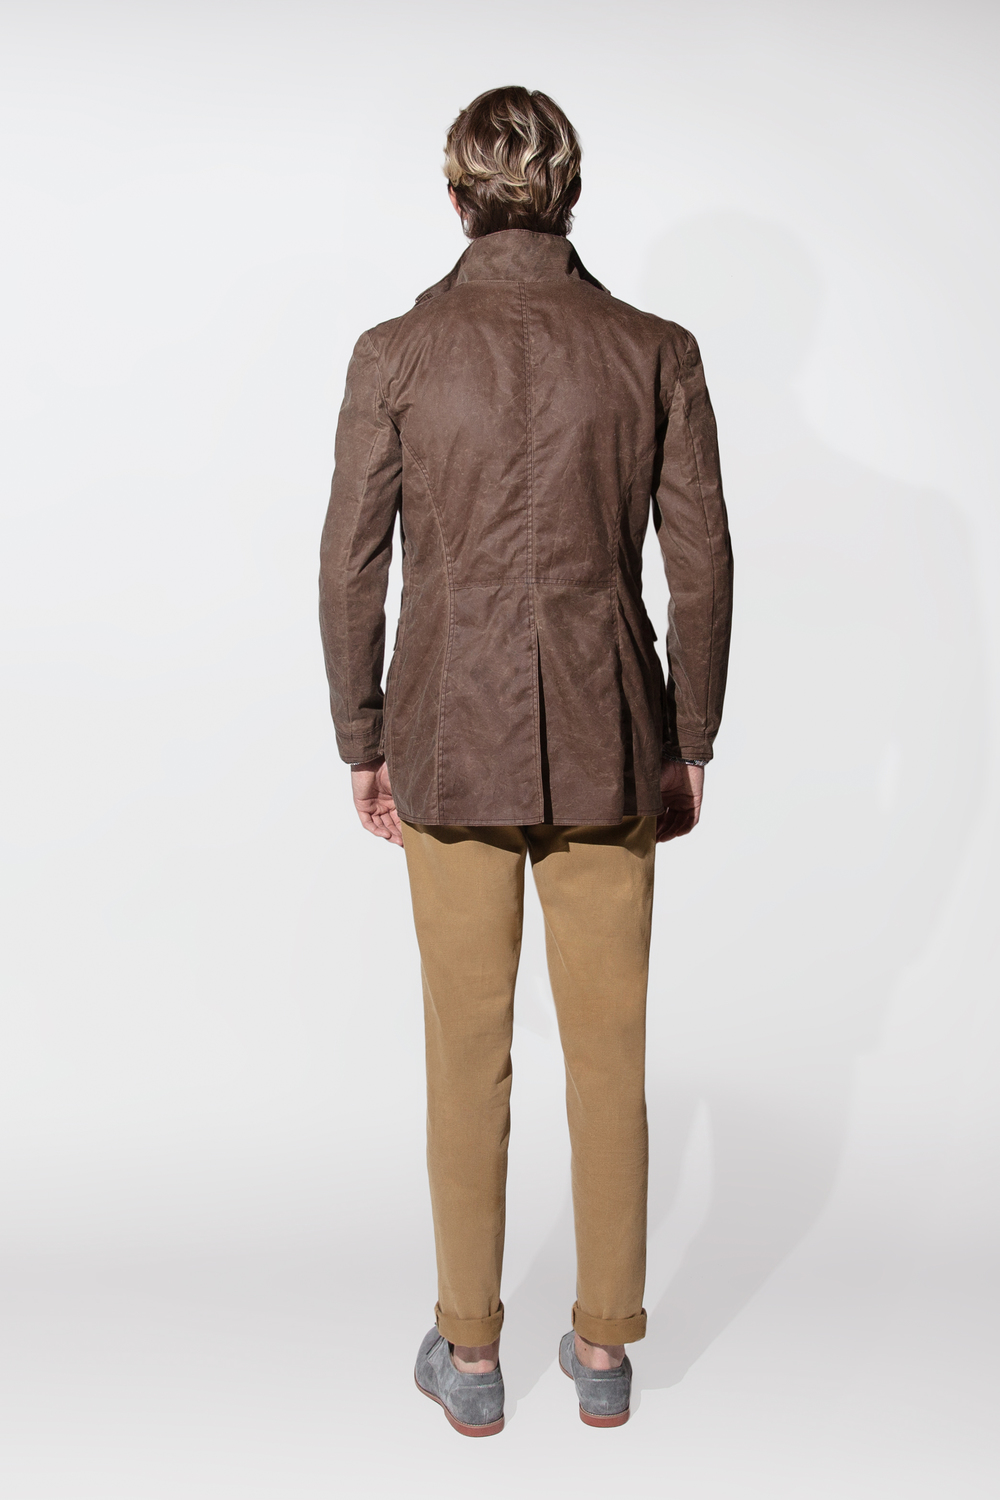 waxed cotton jacket $795